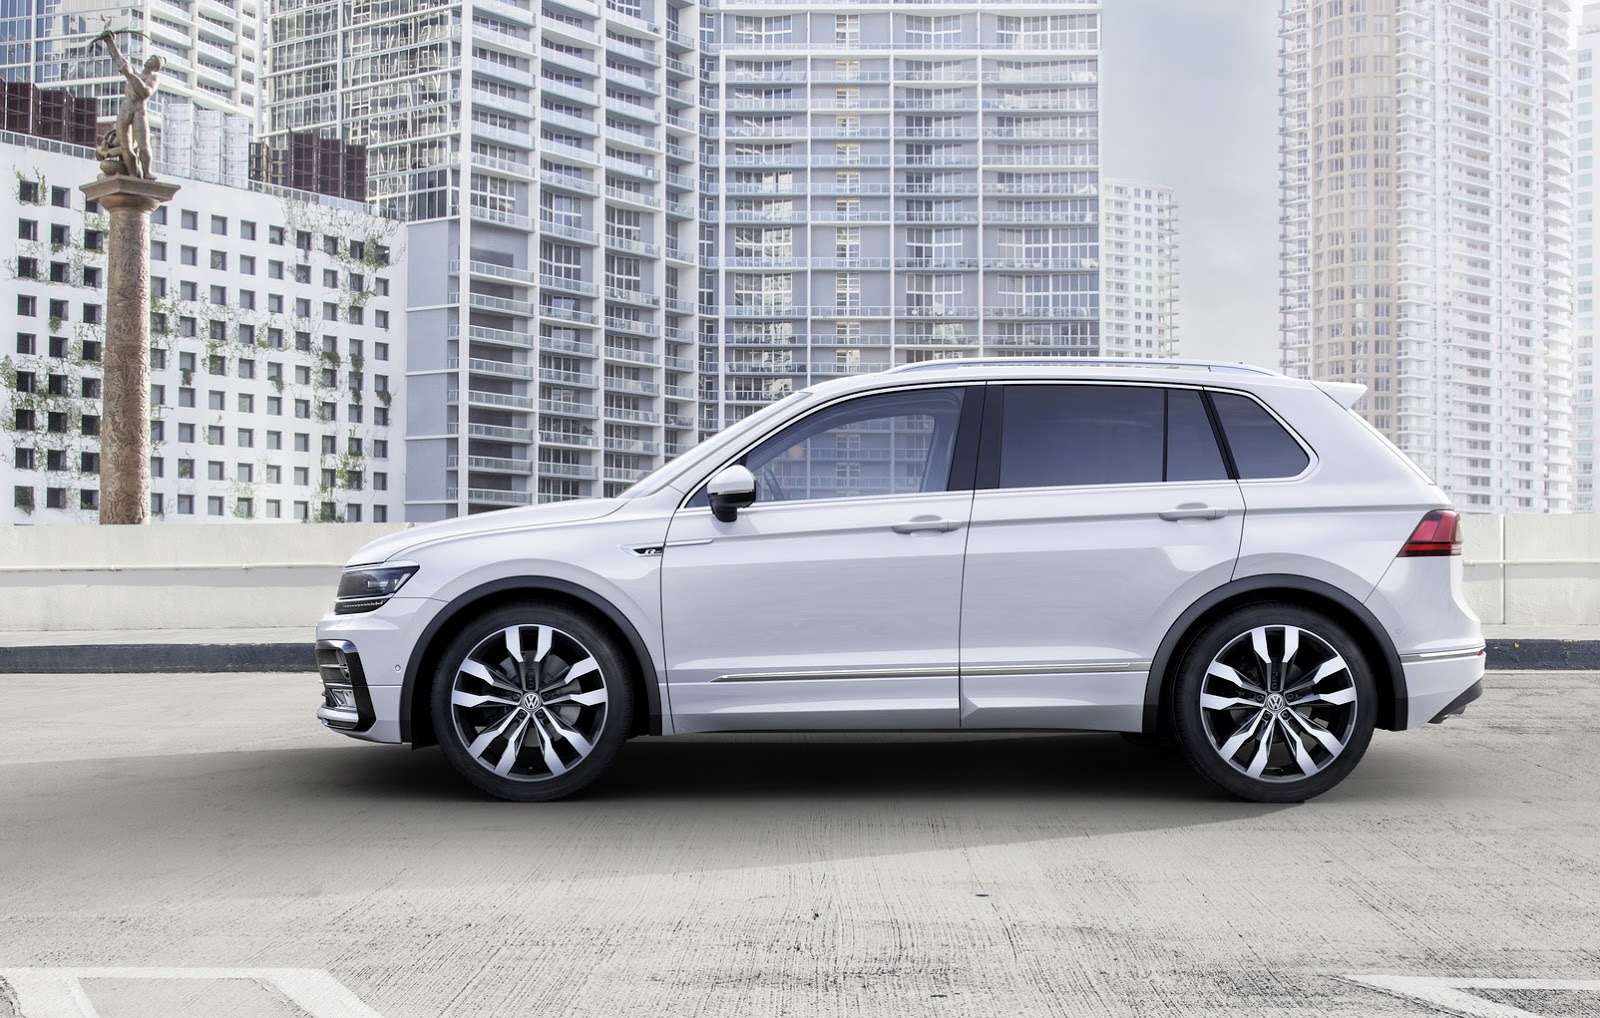 New-2017-VW-Tiguan-3.jpg